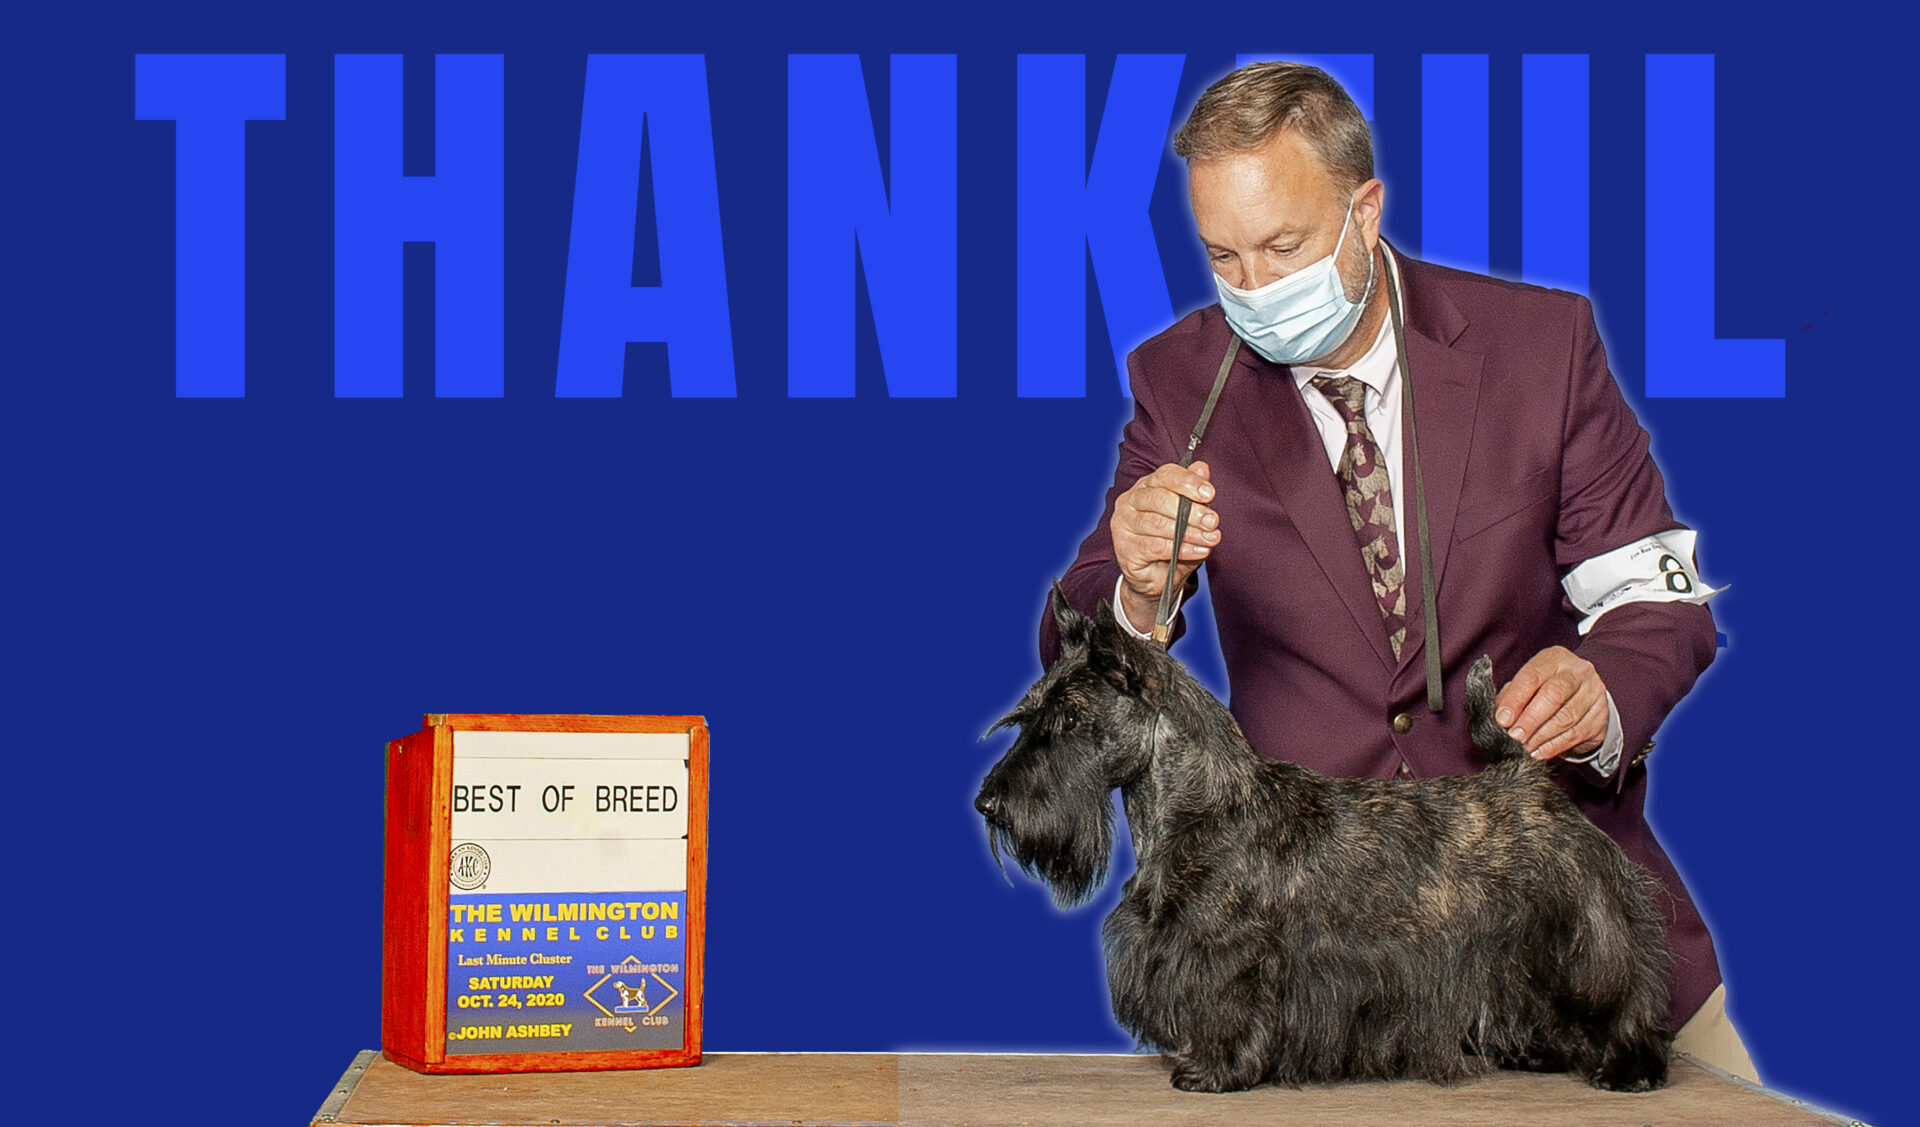 Kingsdale Scottish Terrier is Best of Breed at Wilmington Kennel Club Dog show